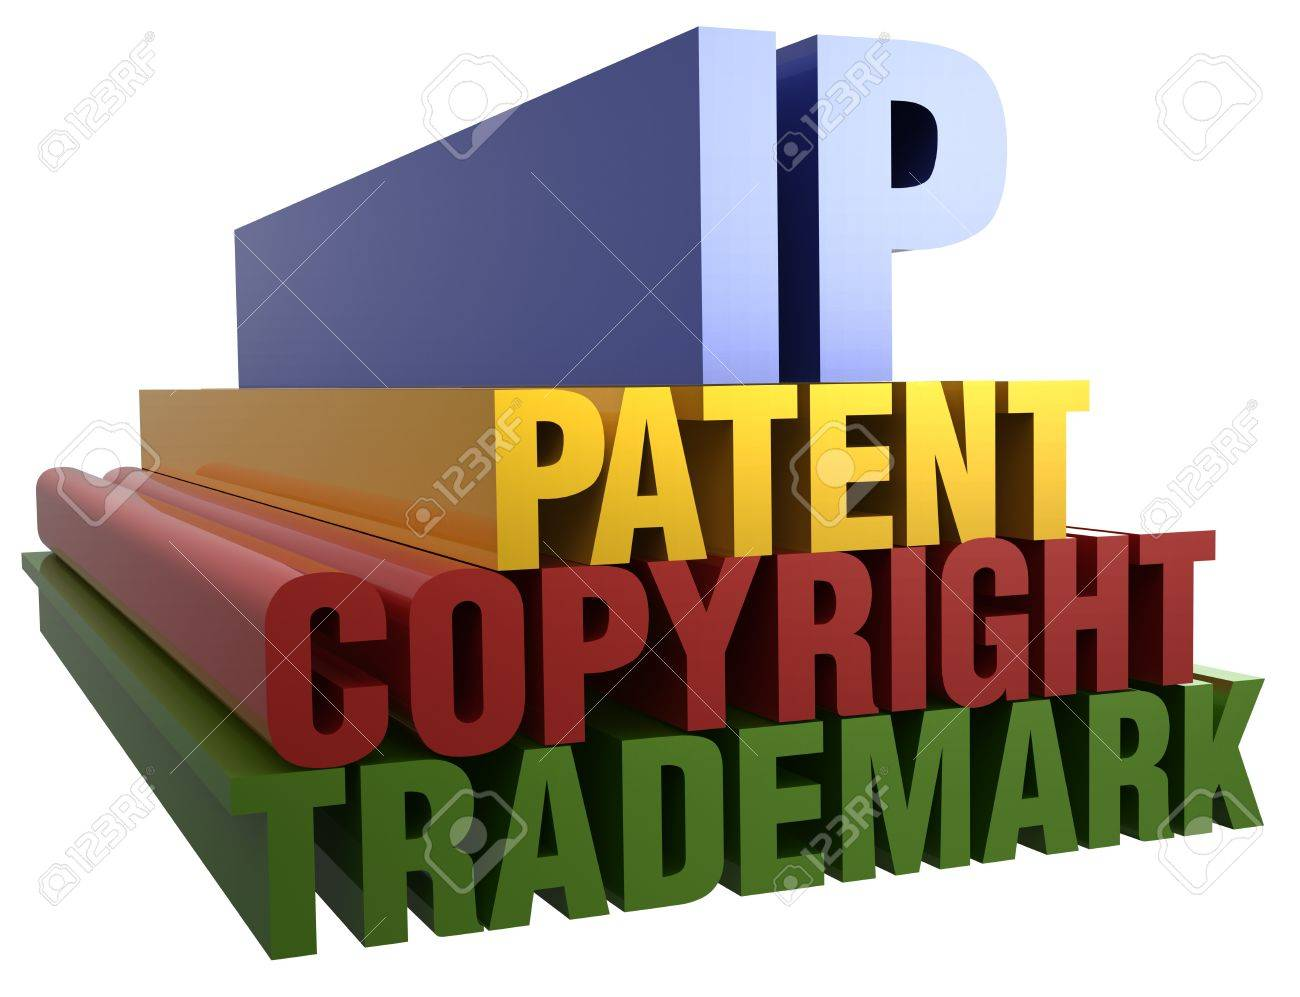 Intellectual Property Patent Copyright Trademark 3D word stack with clipping path Stock Photo - 17200854